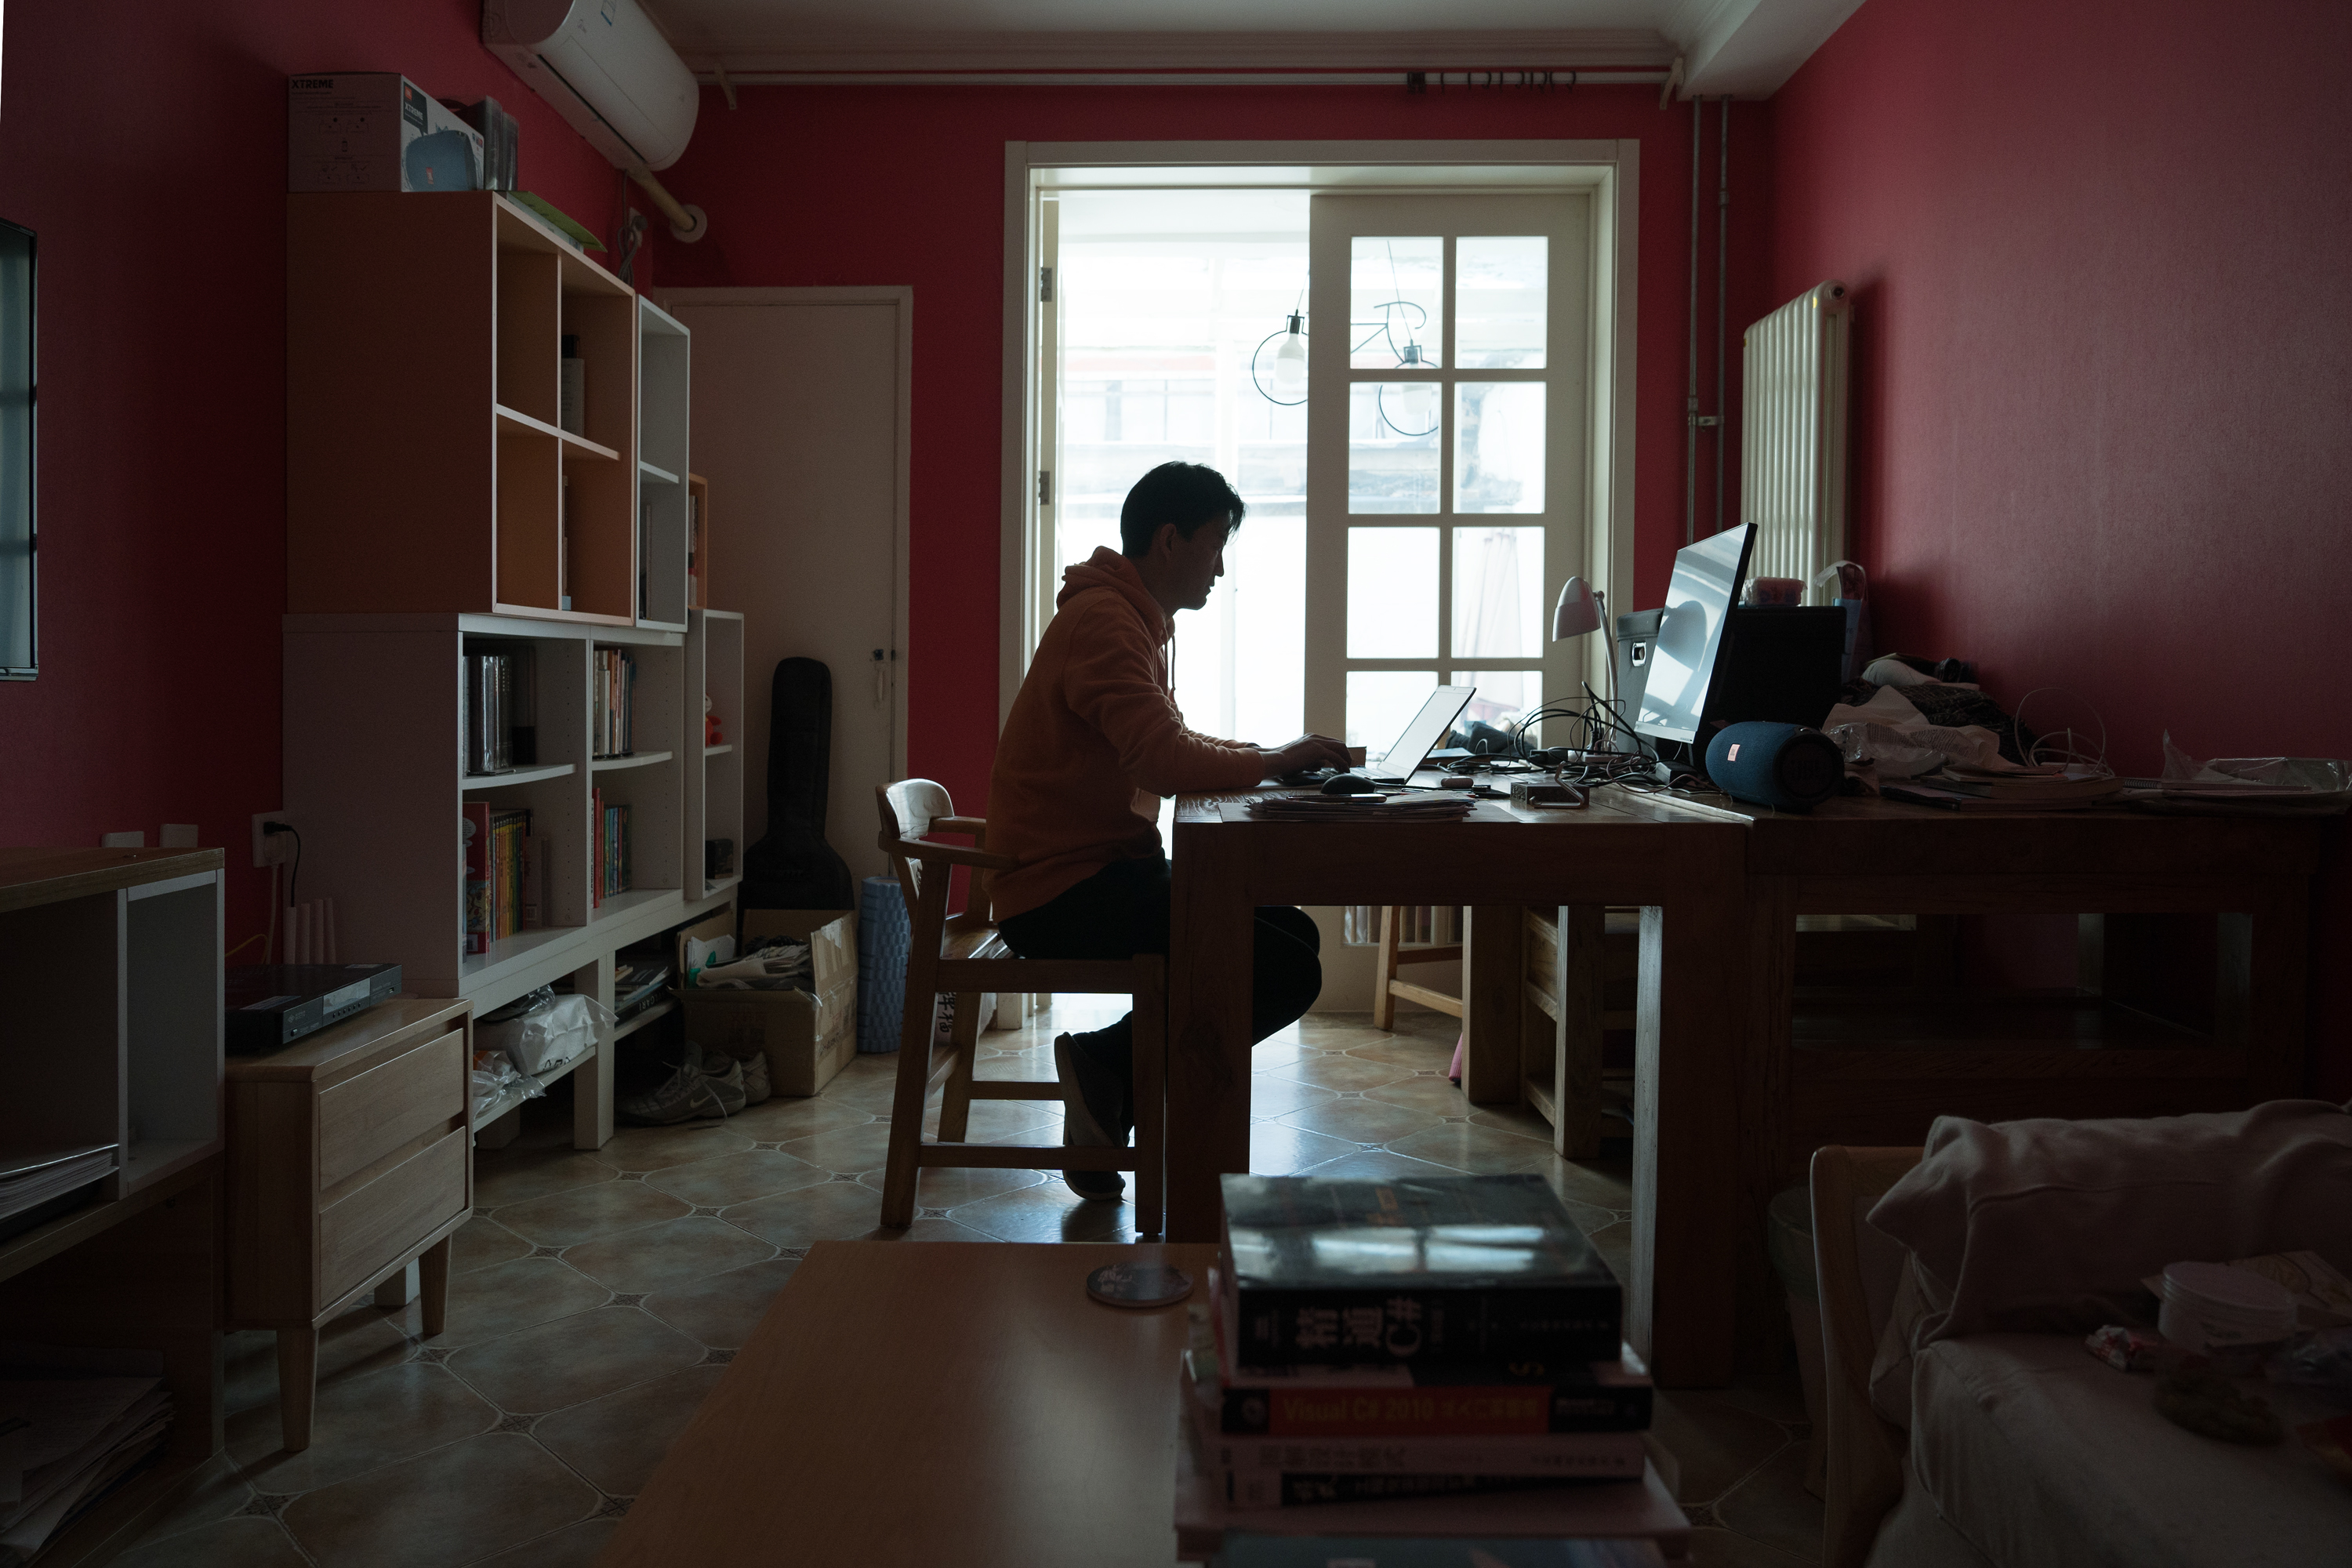 Working from home can make people more productive. Just not during a pandemic.